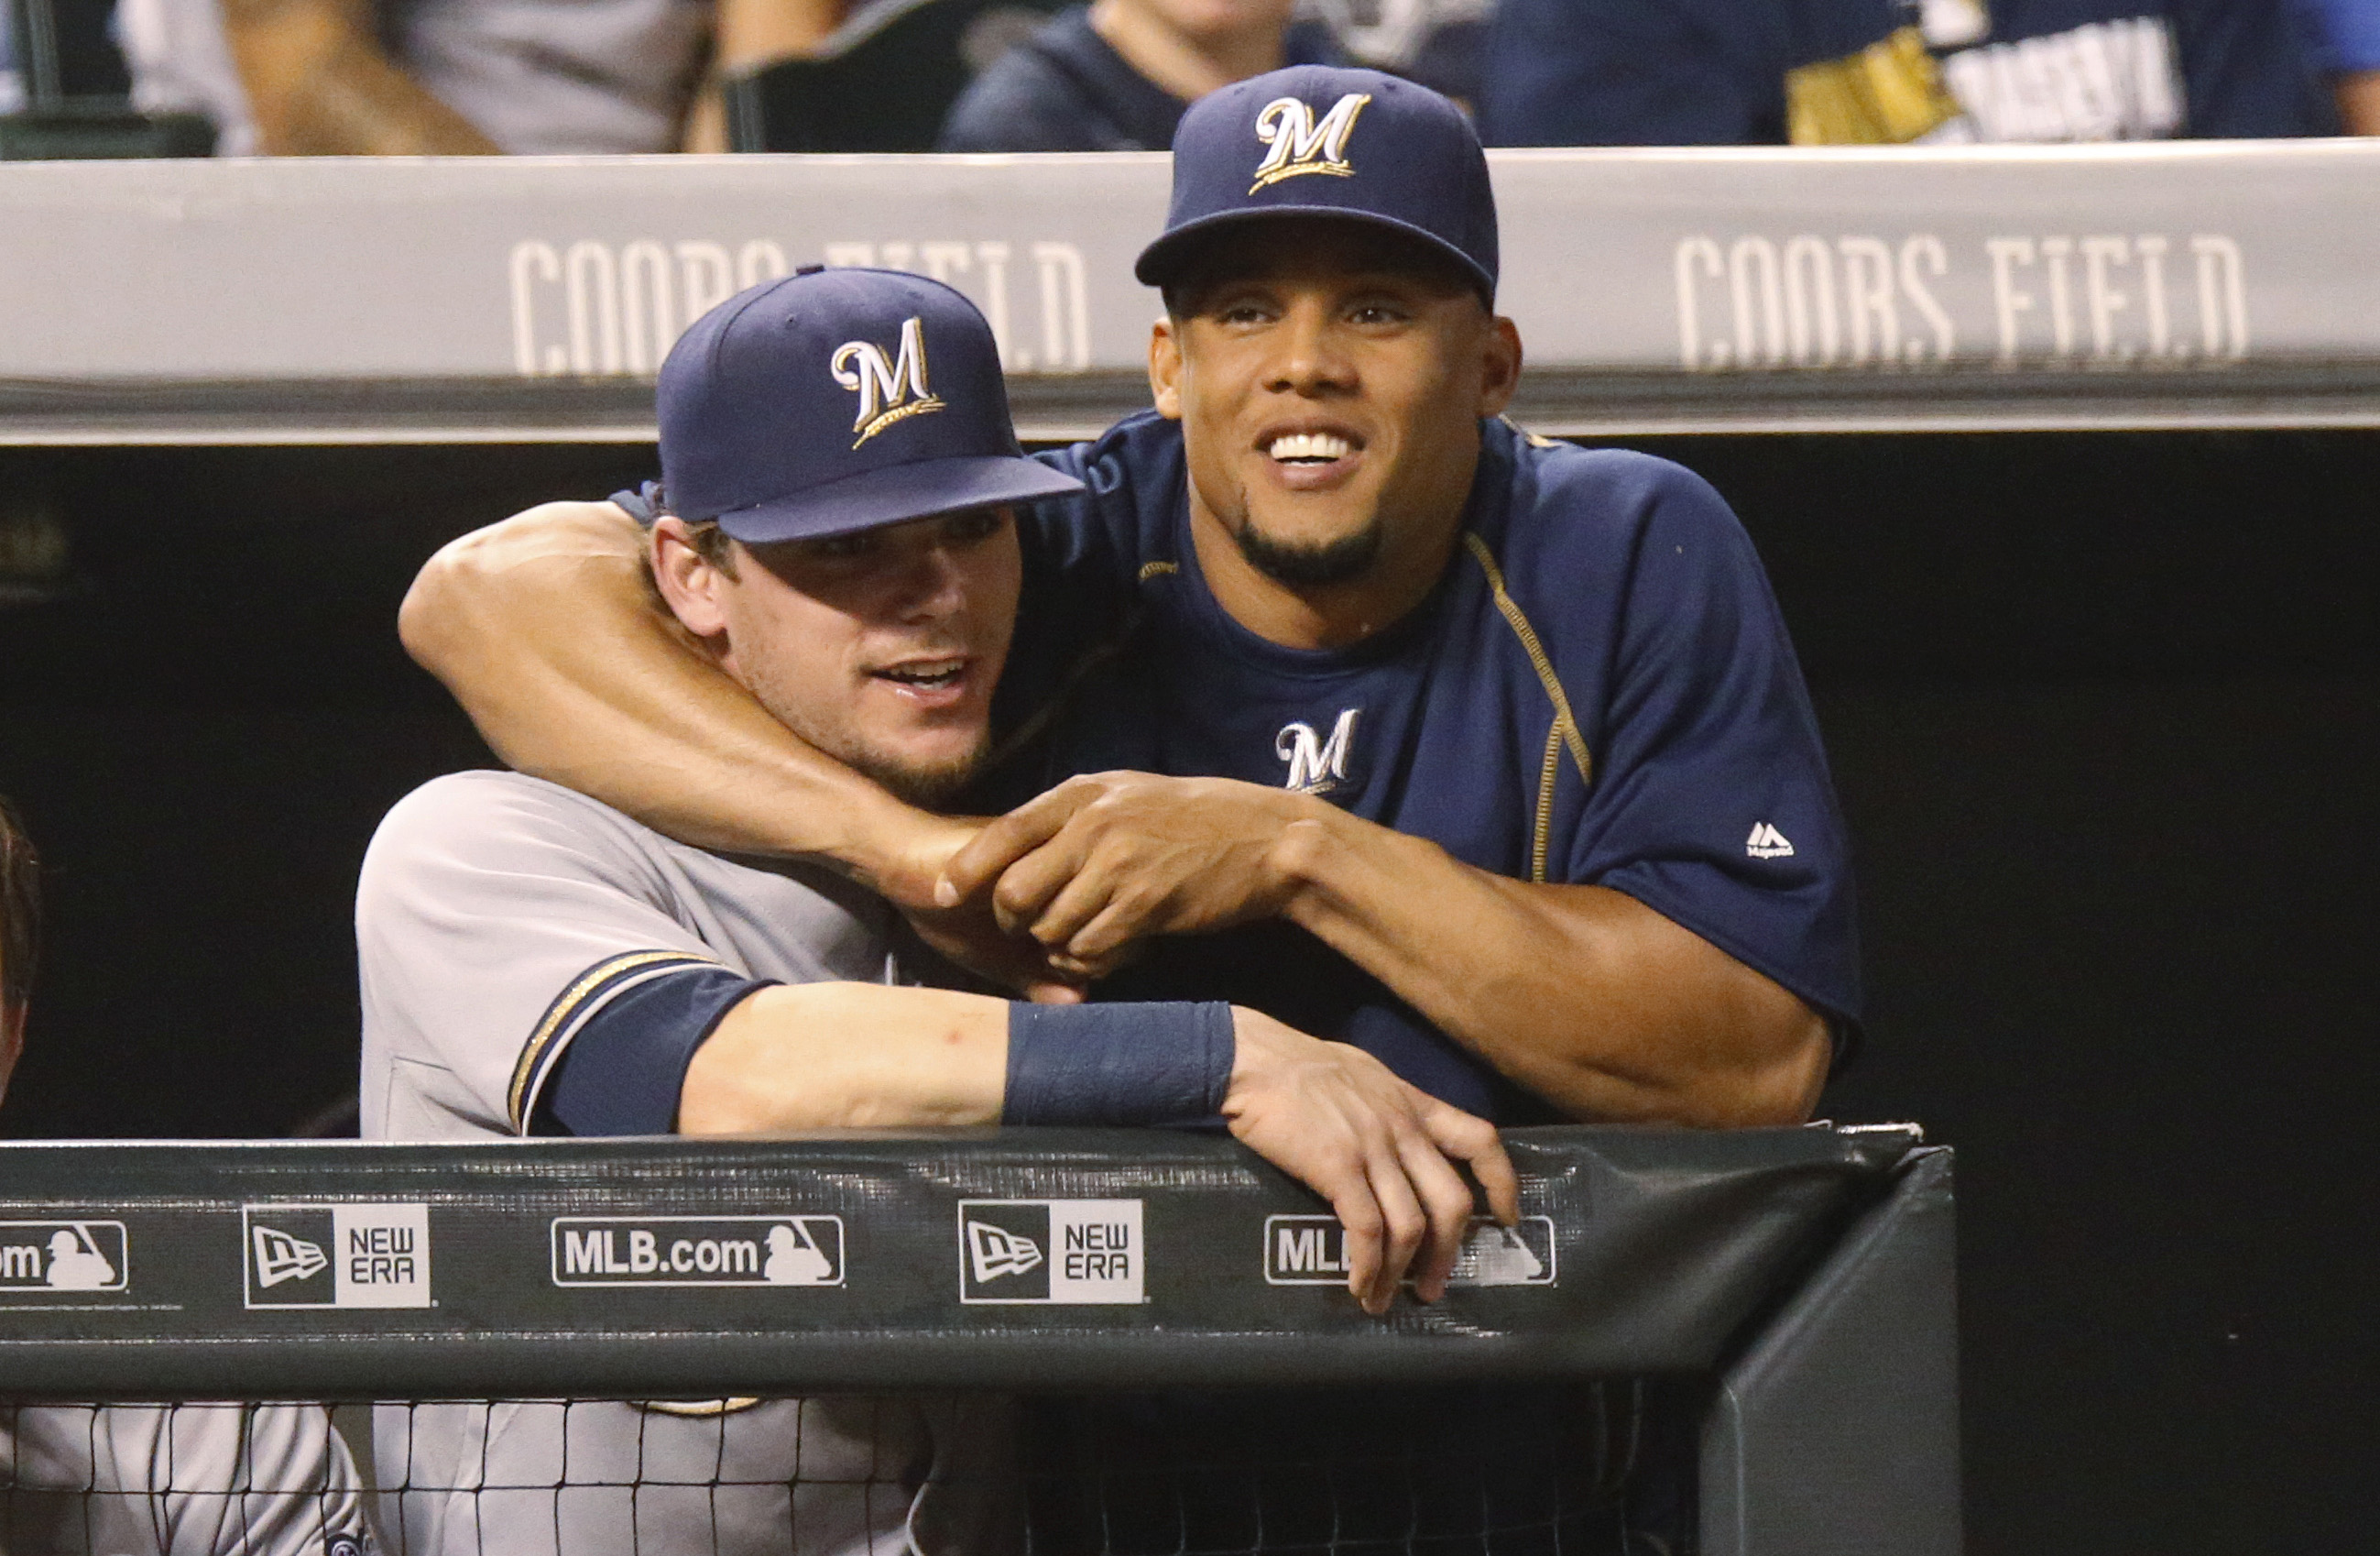 Milwaukee Brewers' Carlos Gomez, right, jokes with second baseman Scooter Gennett as they lean over the dugout rail to watch the Colorado Rockies in the seventh inning of a baseball game Friday, June 19, 2015, in Denver. Milwaukee won 9-5. (AP Photo/David